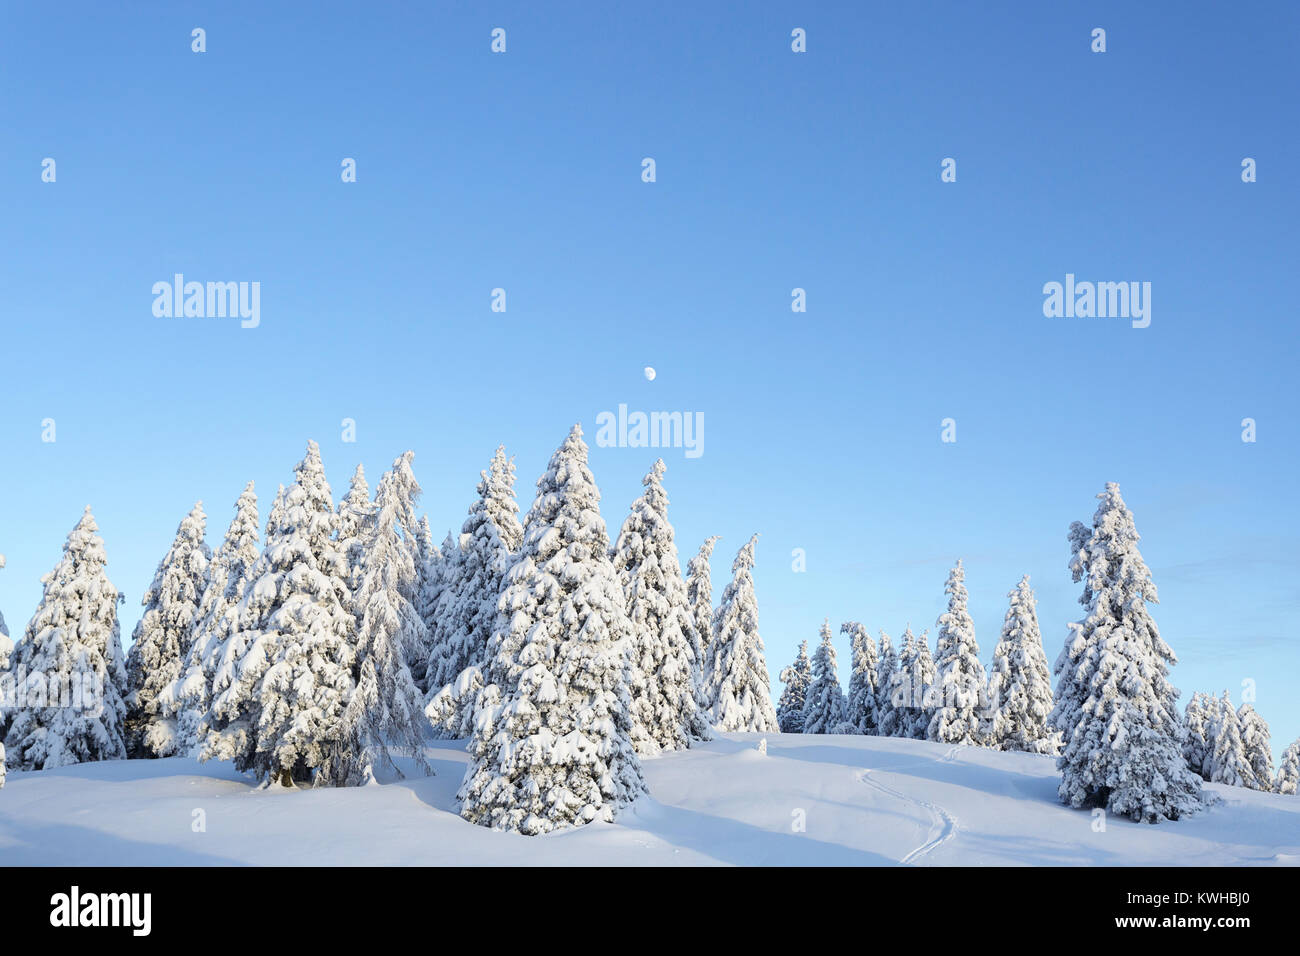 Winter wonderland, frozen spruces on a snow covered mountain, Krvavec, Slovenia. Stock Photo